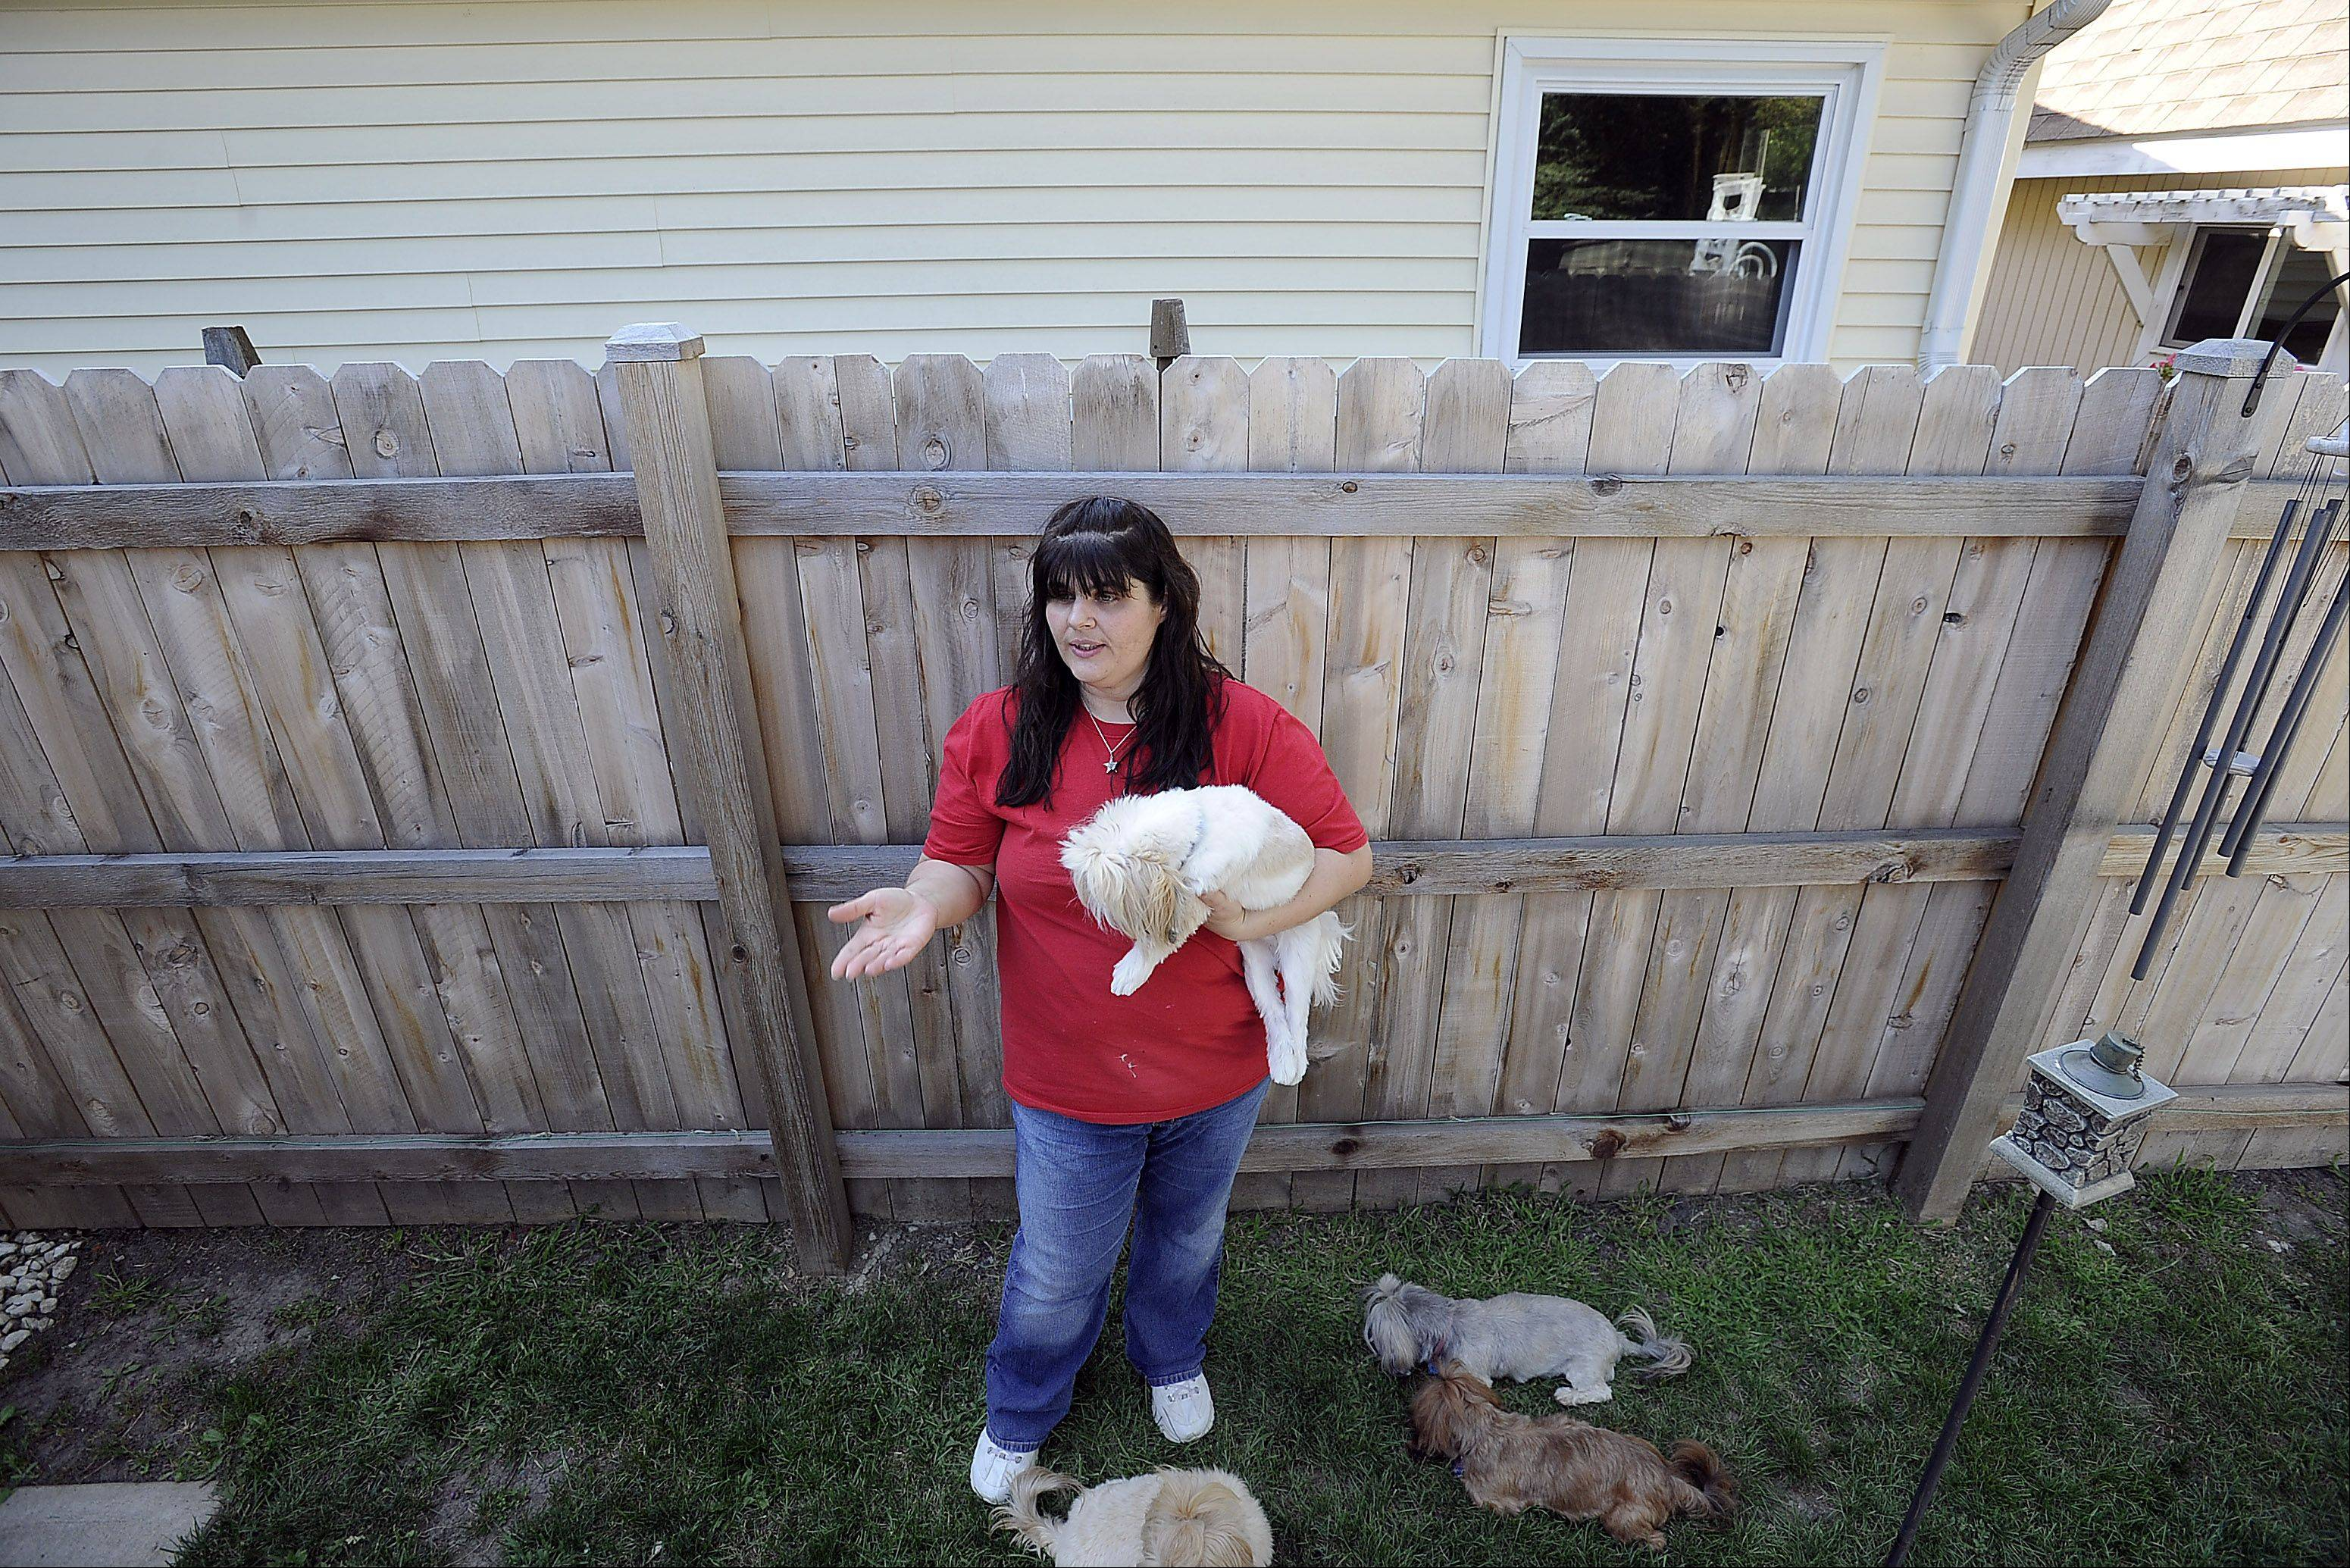 Cindy Weik of Elk Grove Village stands in her backyard next to the fence that she and her husband were told to erect by the village after the dogs they were breeding caused neighbors to complain.